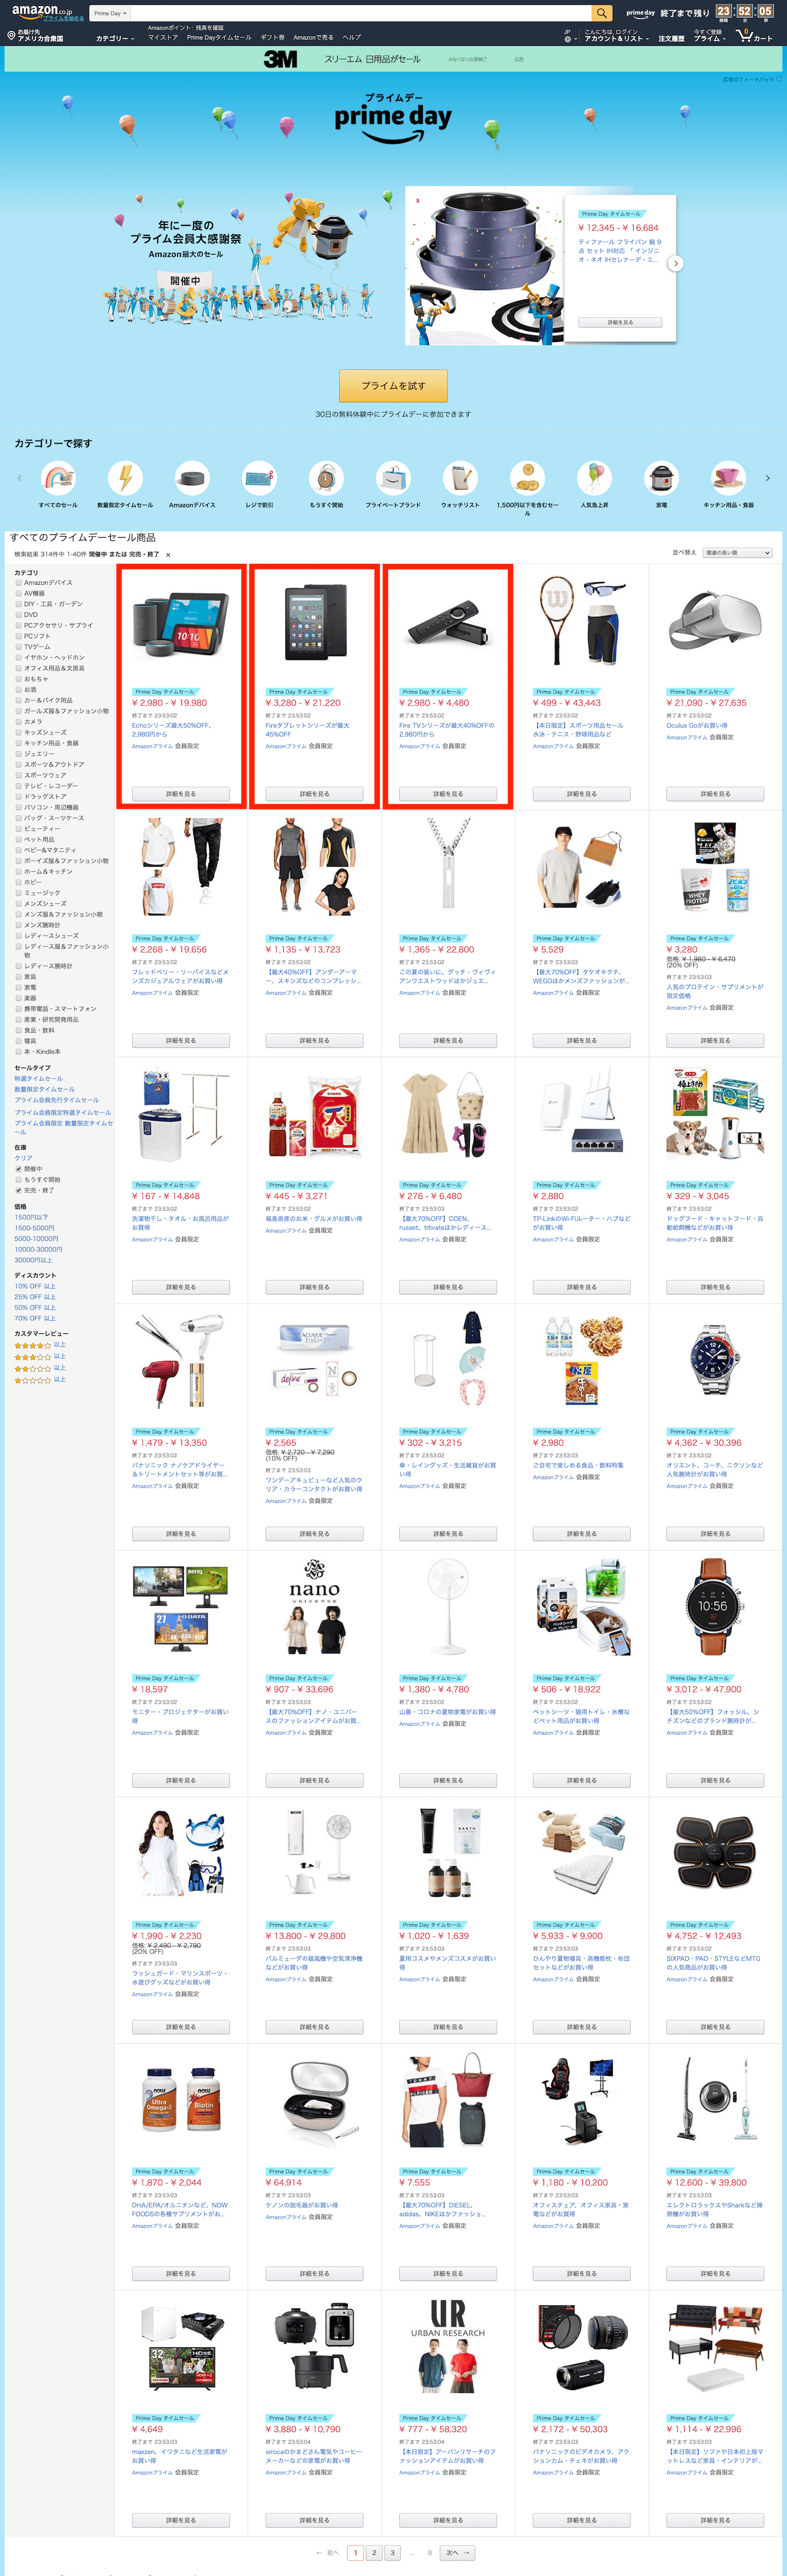 Amazon Japan Prime Day private label brands